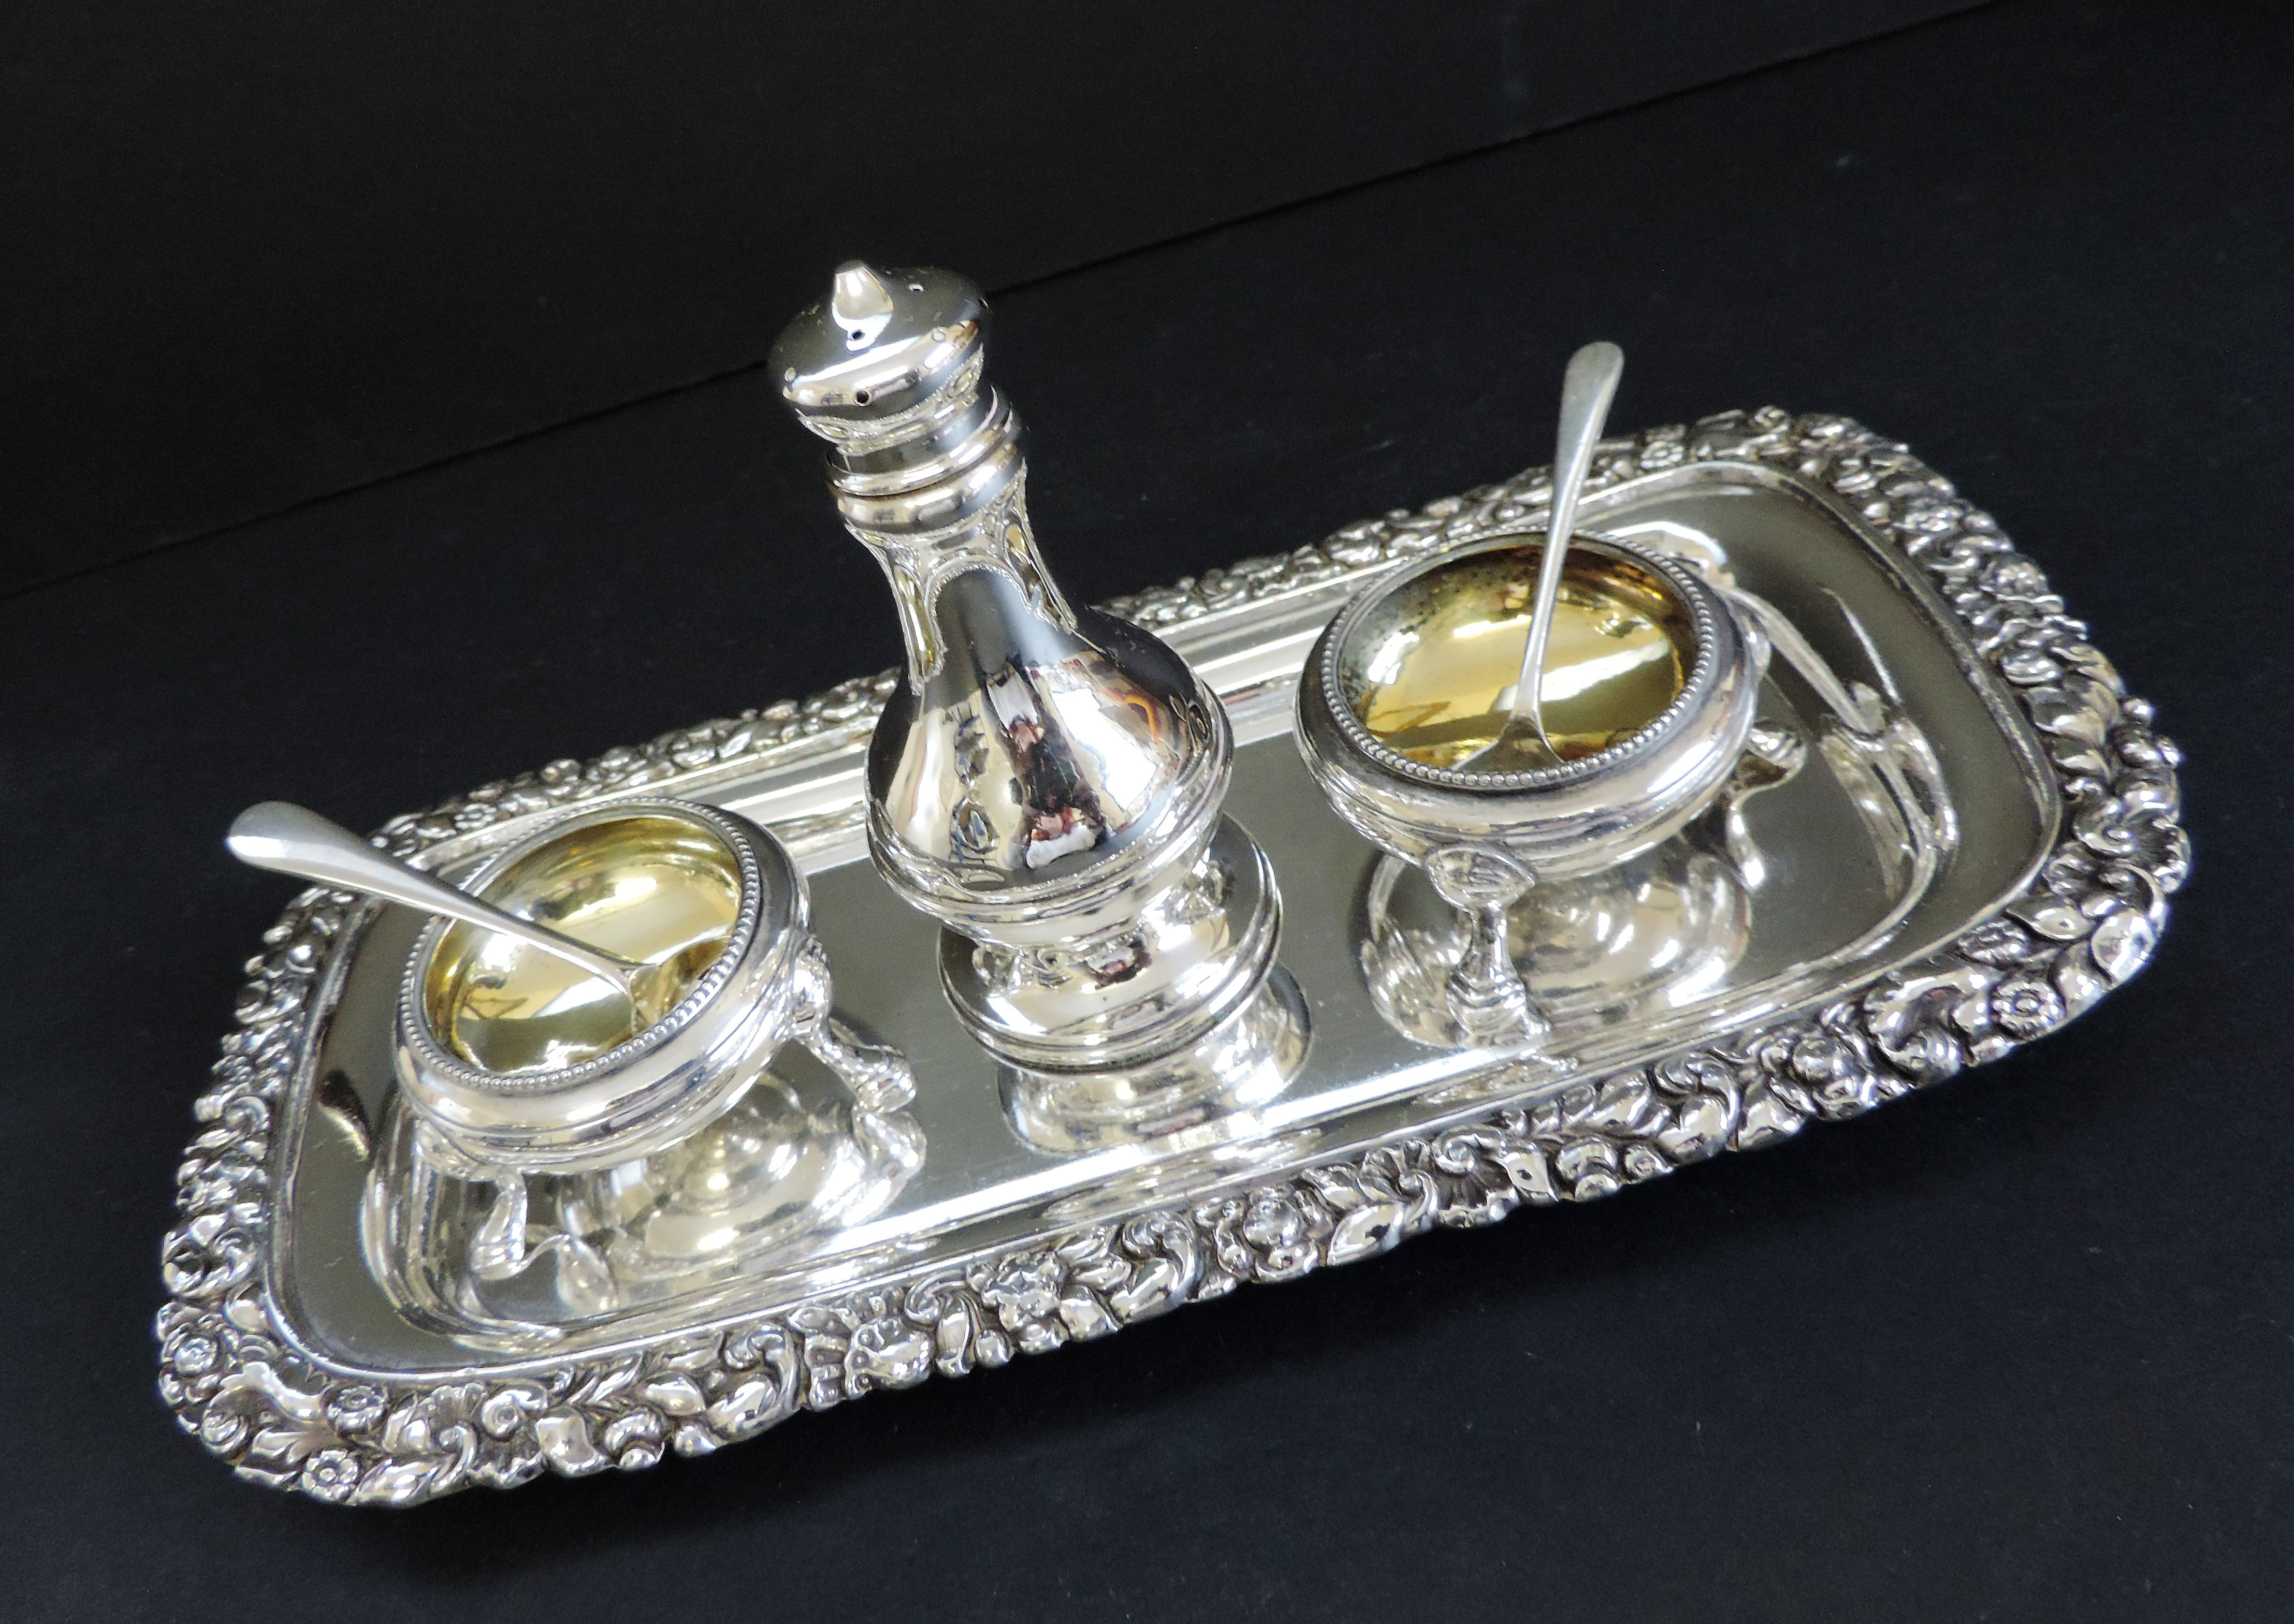 Antique Silver Plated 6 Piece Condiment Set - Image 5 of 5